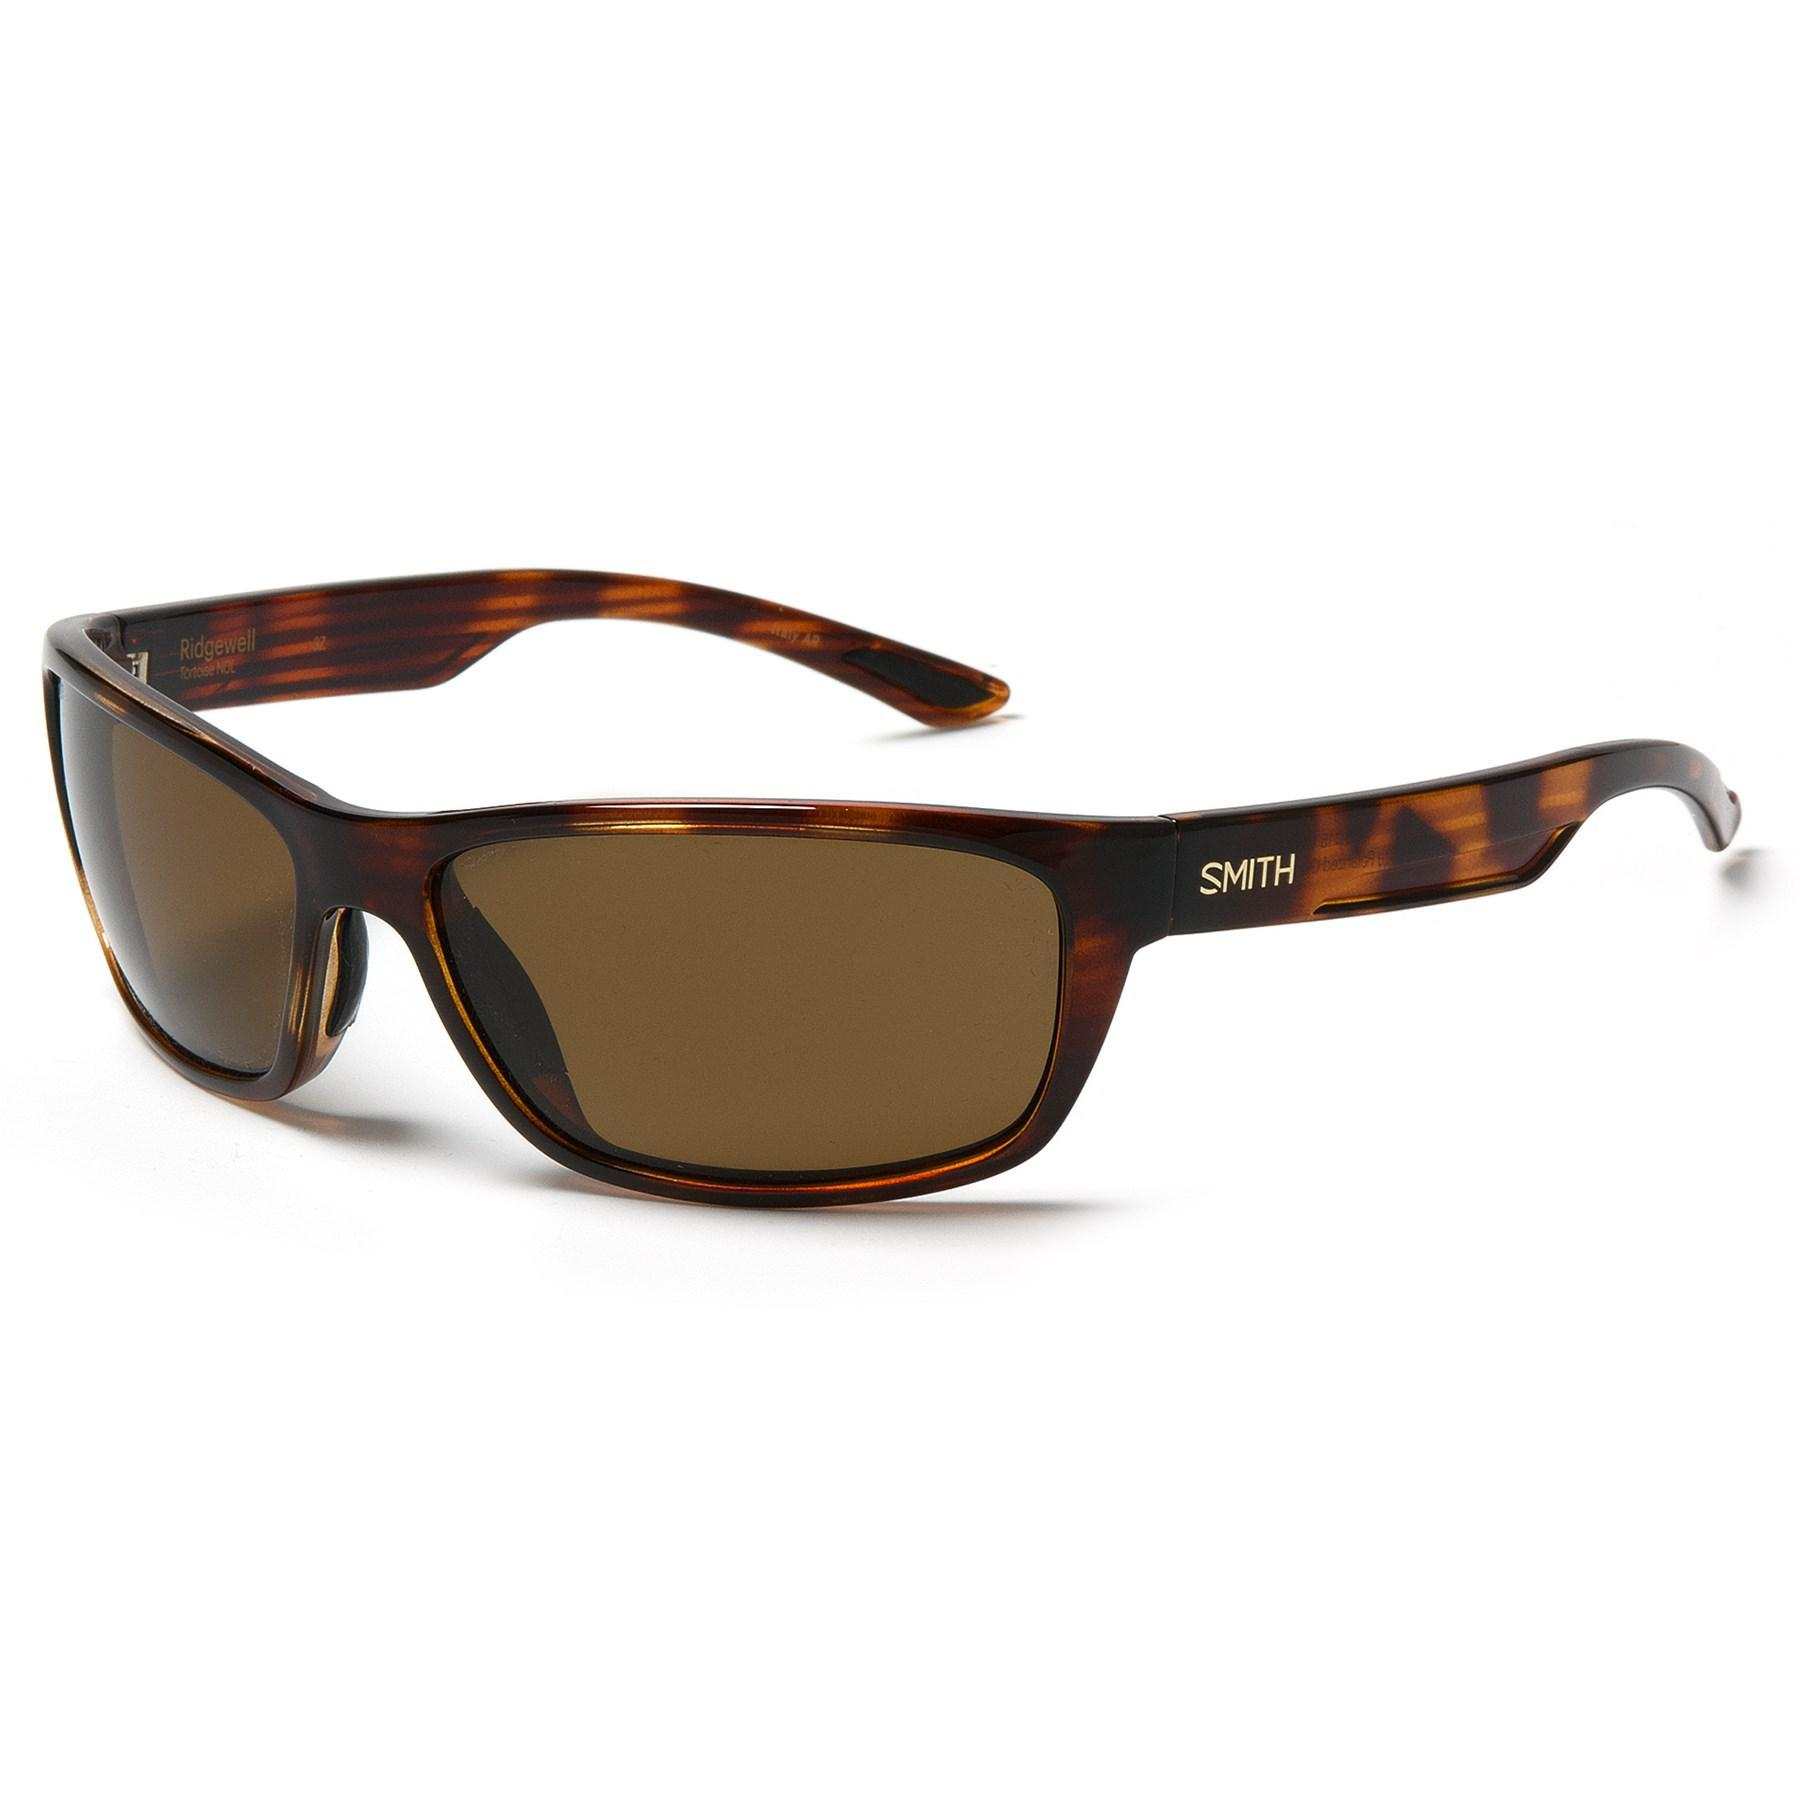 af5fed9bc4 Lyst - Smith Optics Ridgewell Sunglasses in Brown for Men